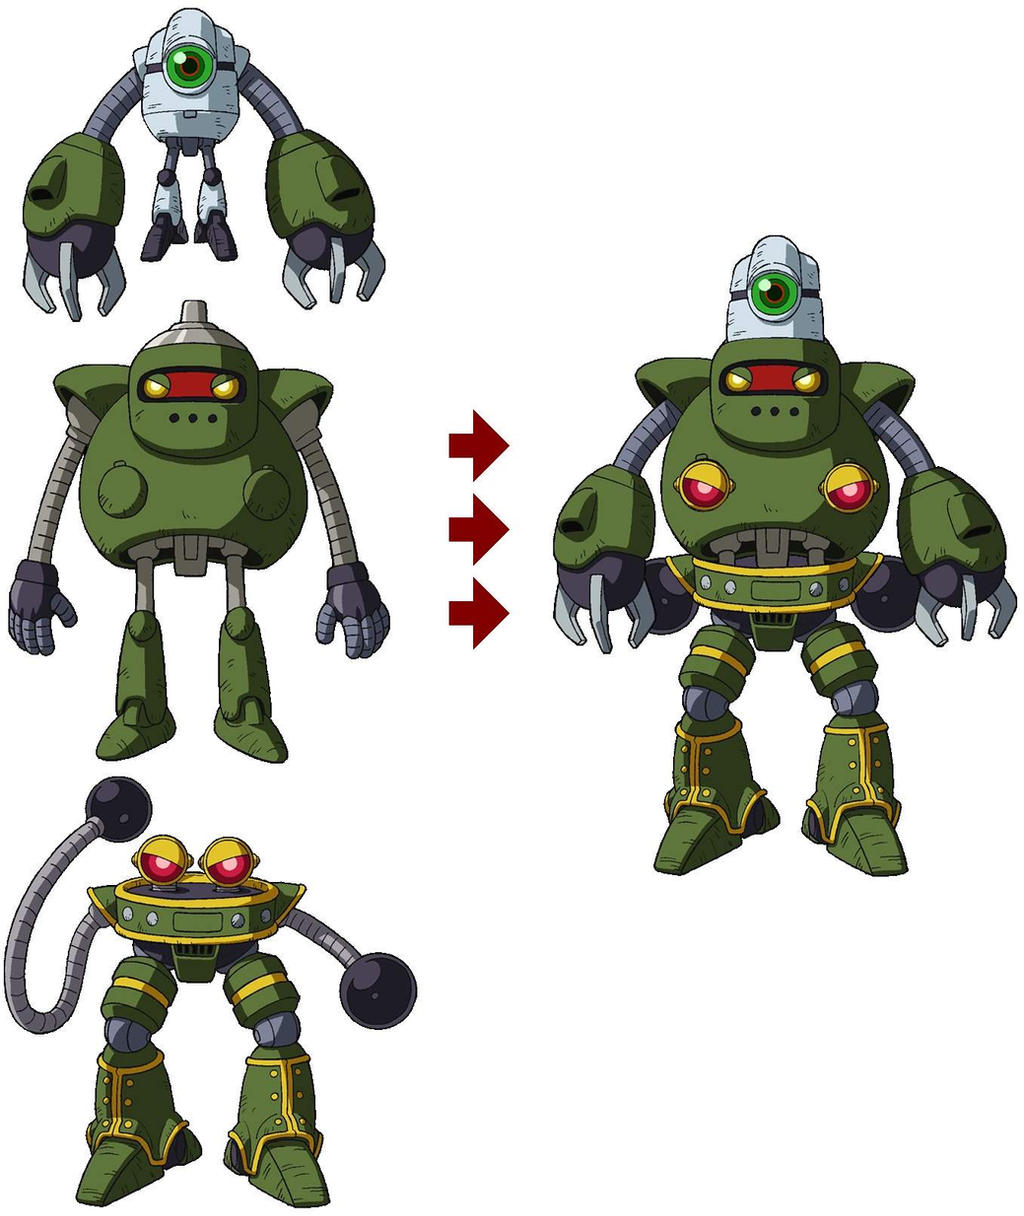 Anyone Else Feel The Robots From Universe 3 Are A Huge Let